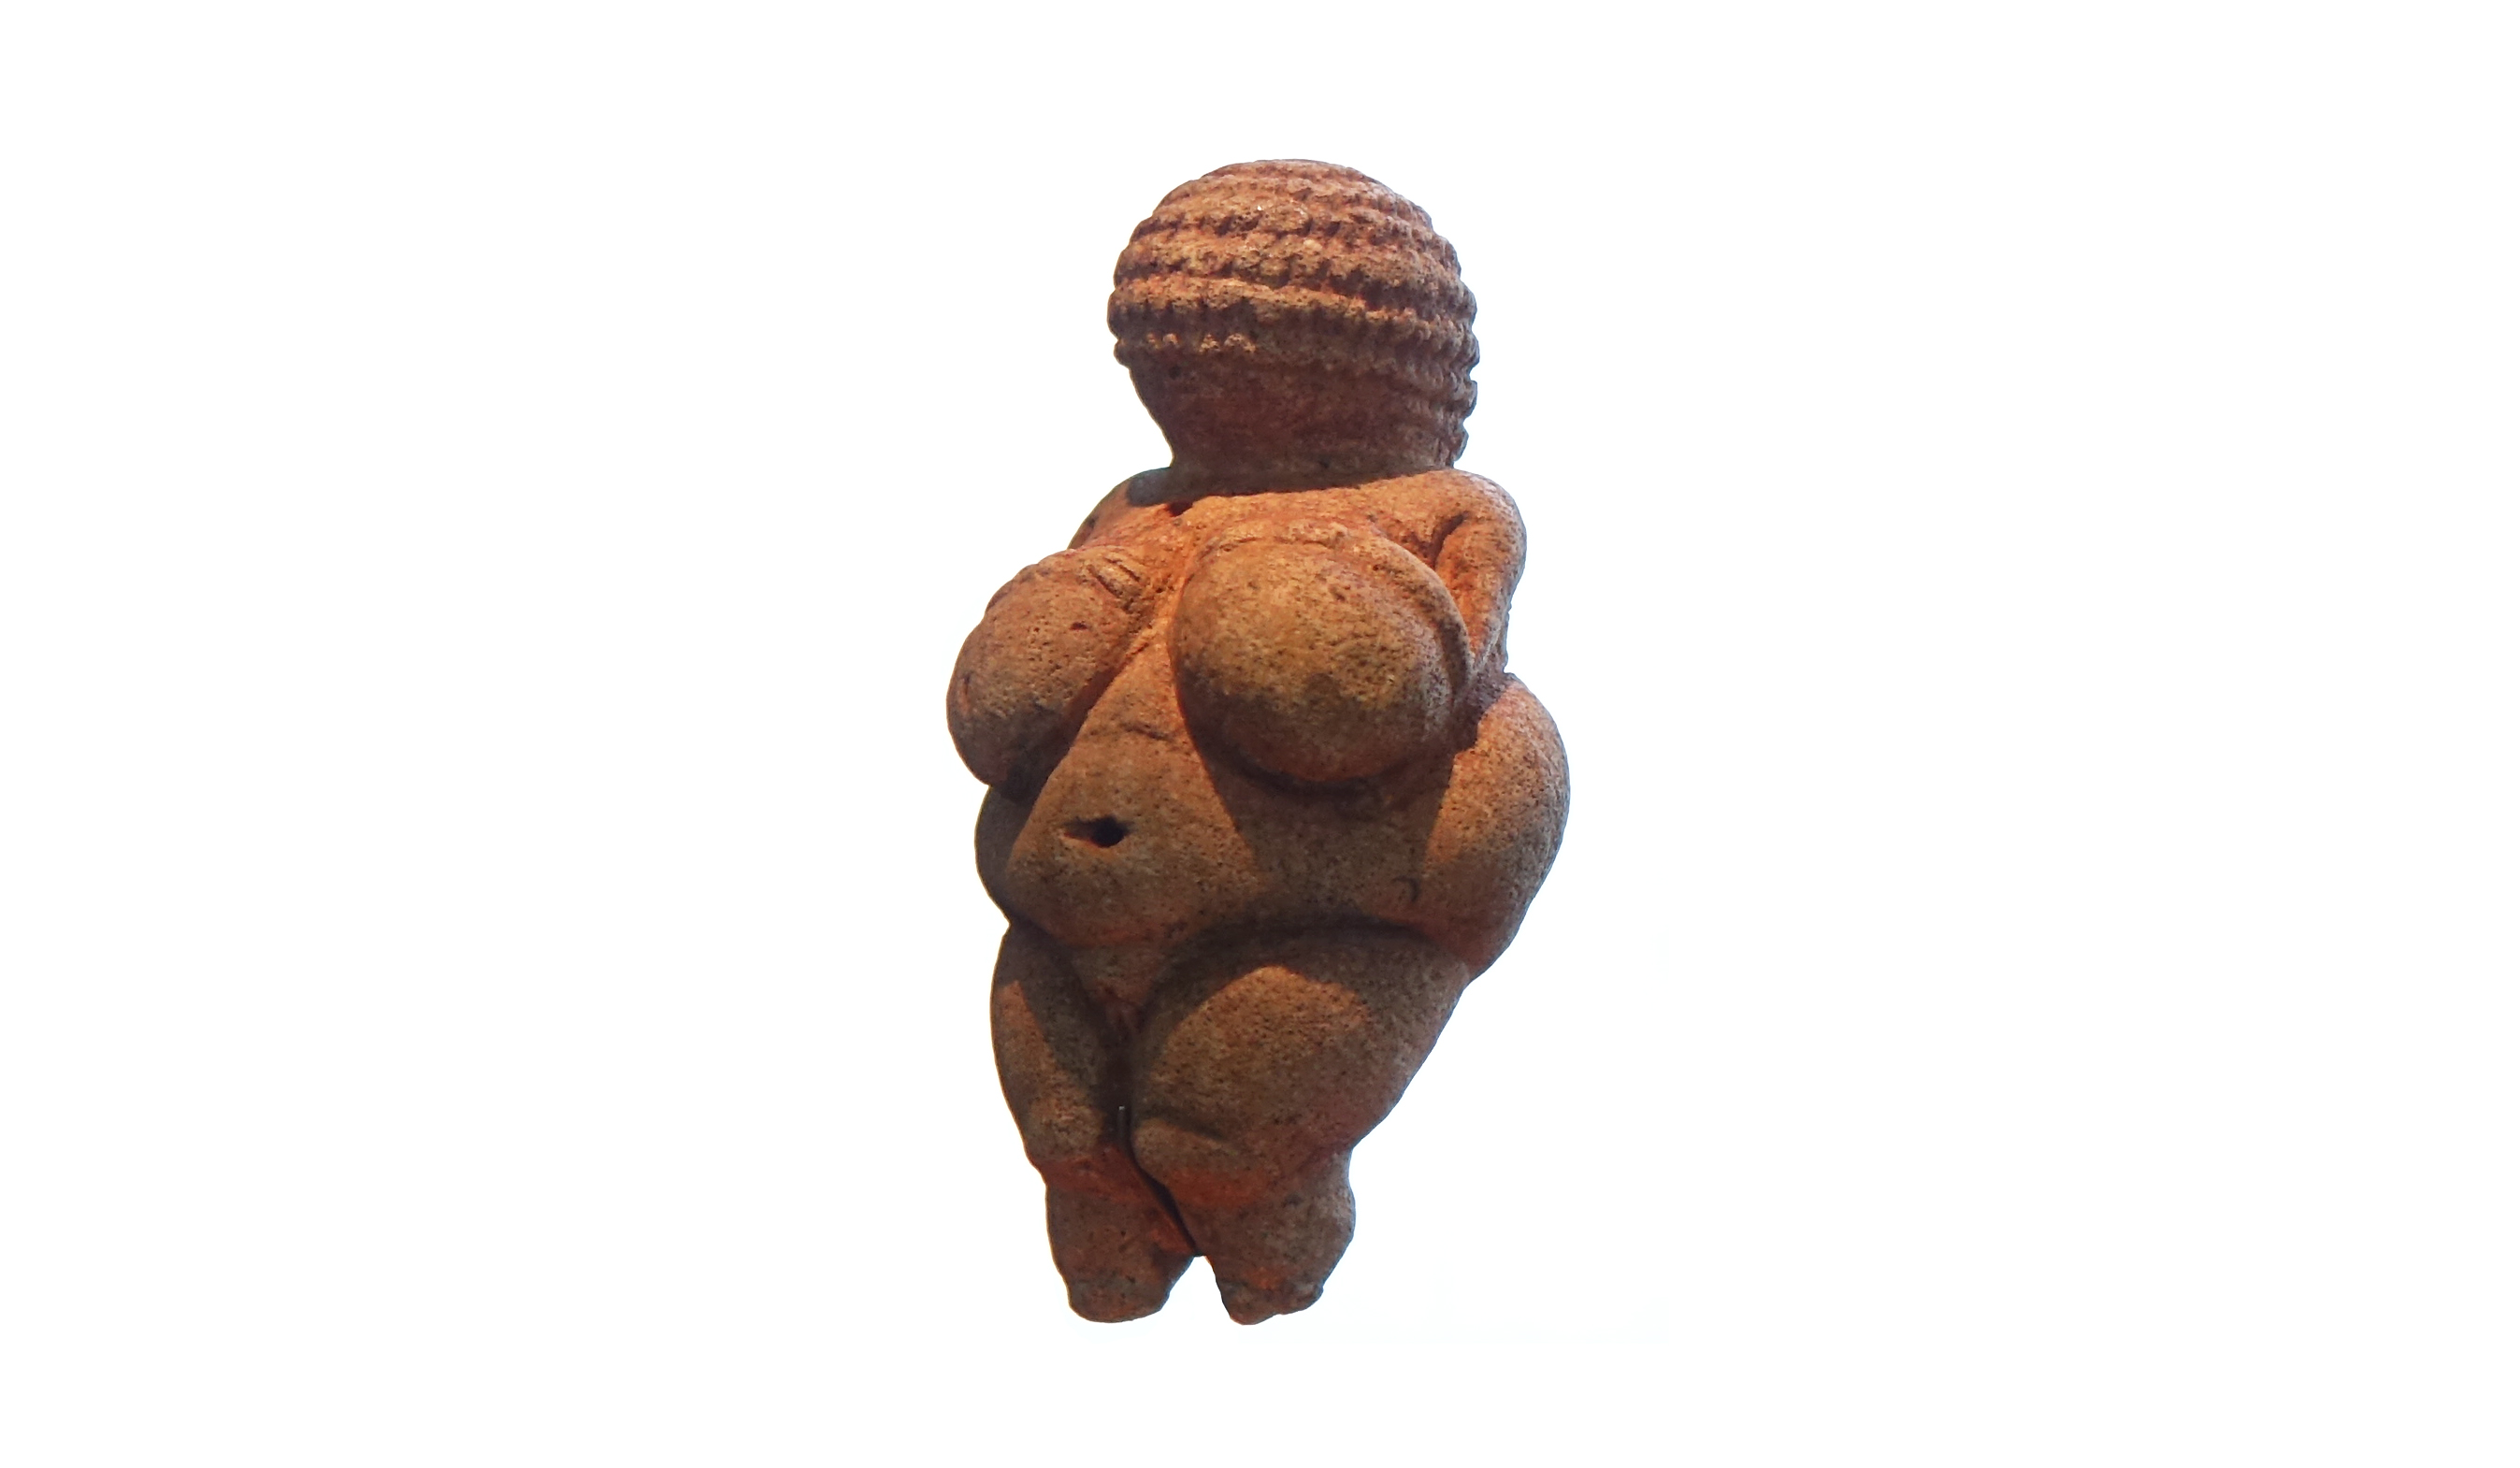 Venus of Willendorf, c. 28,000-25,000 BCE